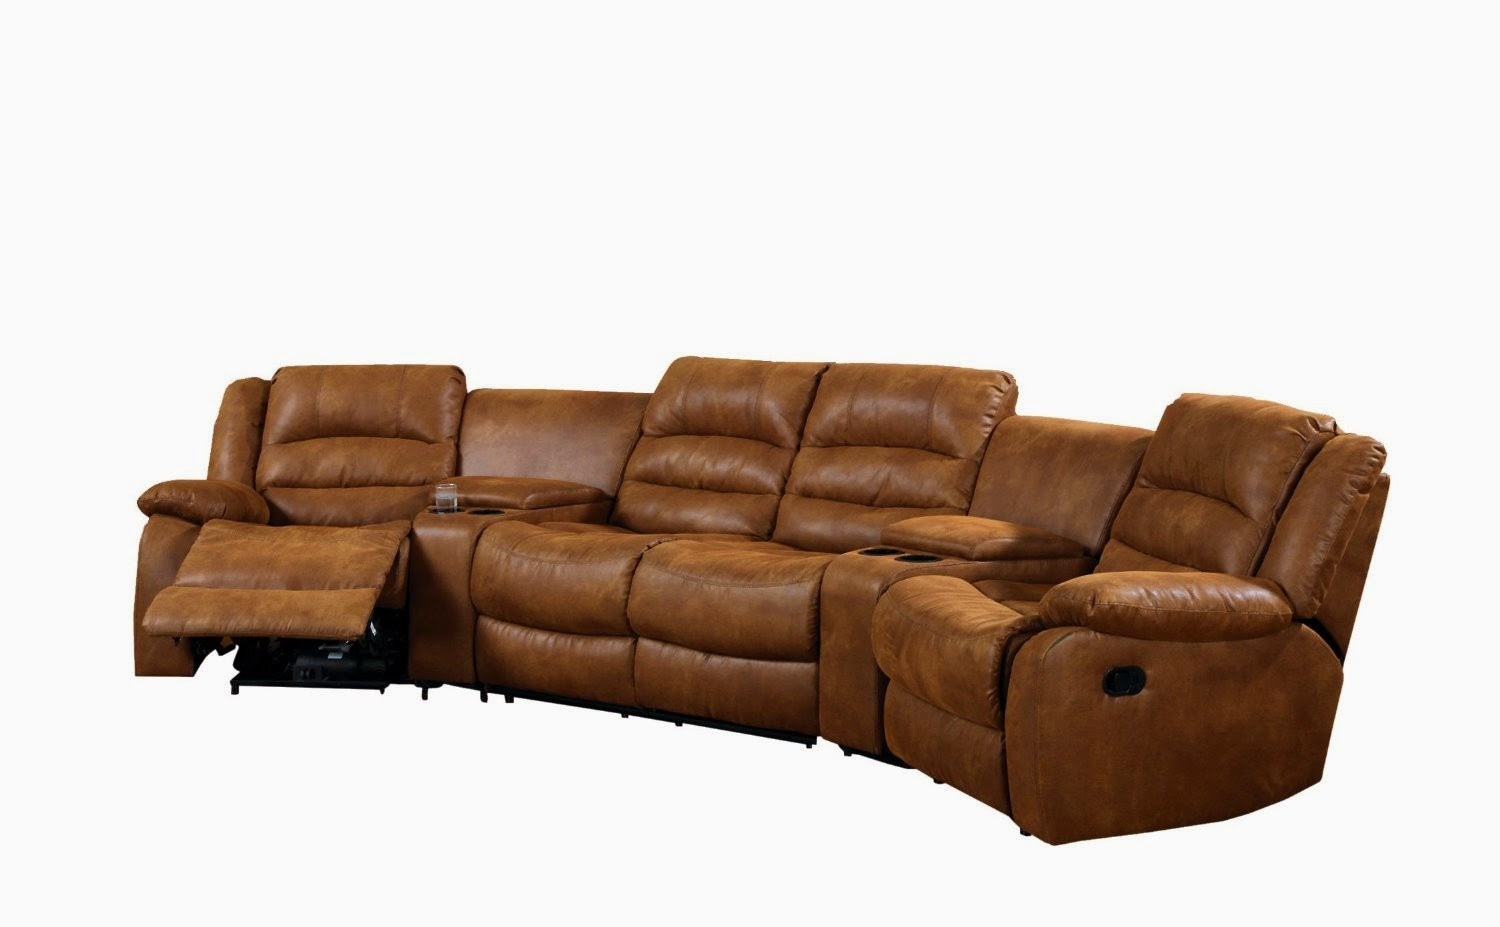 reclining-sofa-sets-with-cup-holders  sc 1 st  Reclining Sofa Sets Sale - blogger : reclining sofa with cup holders - islam-shia.org